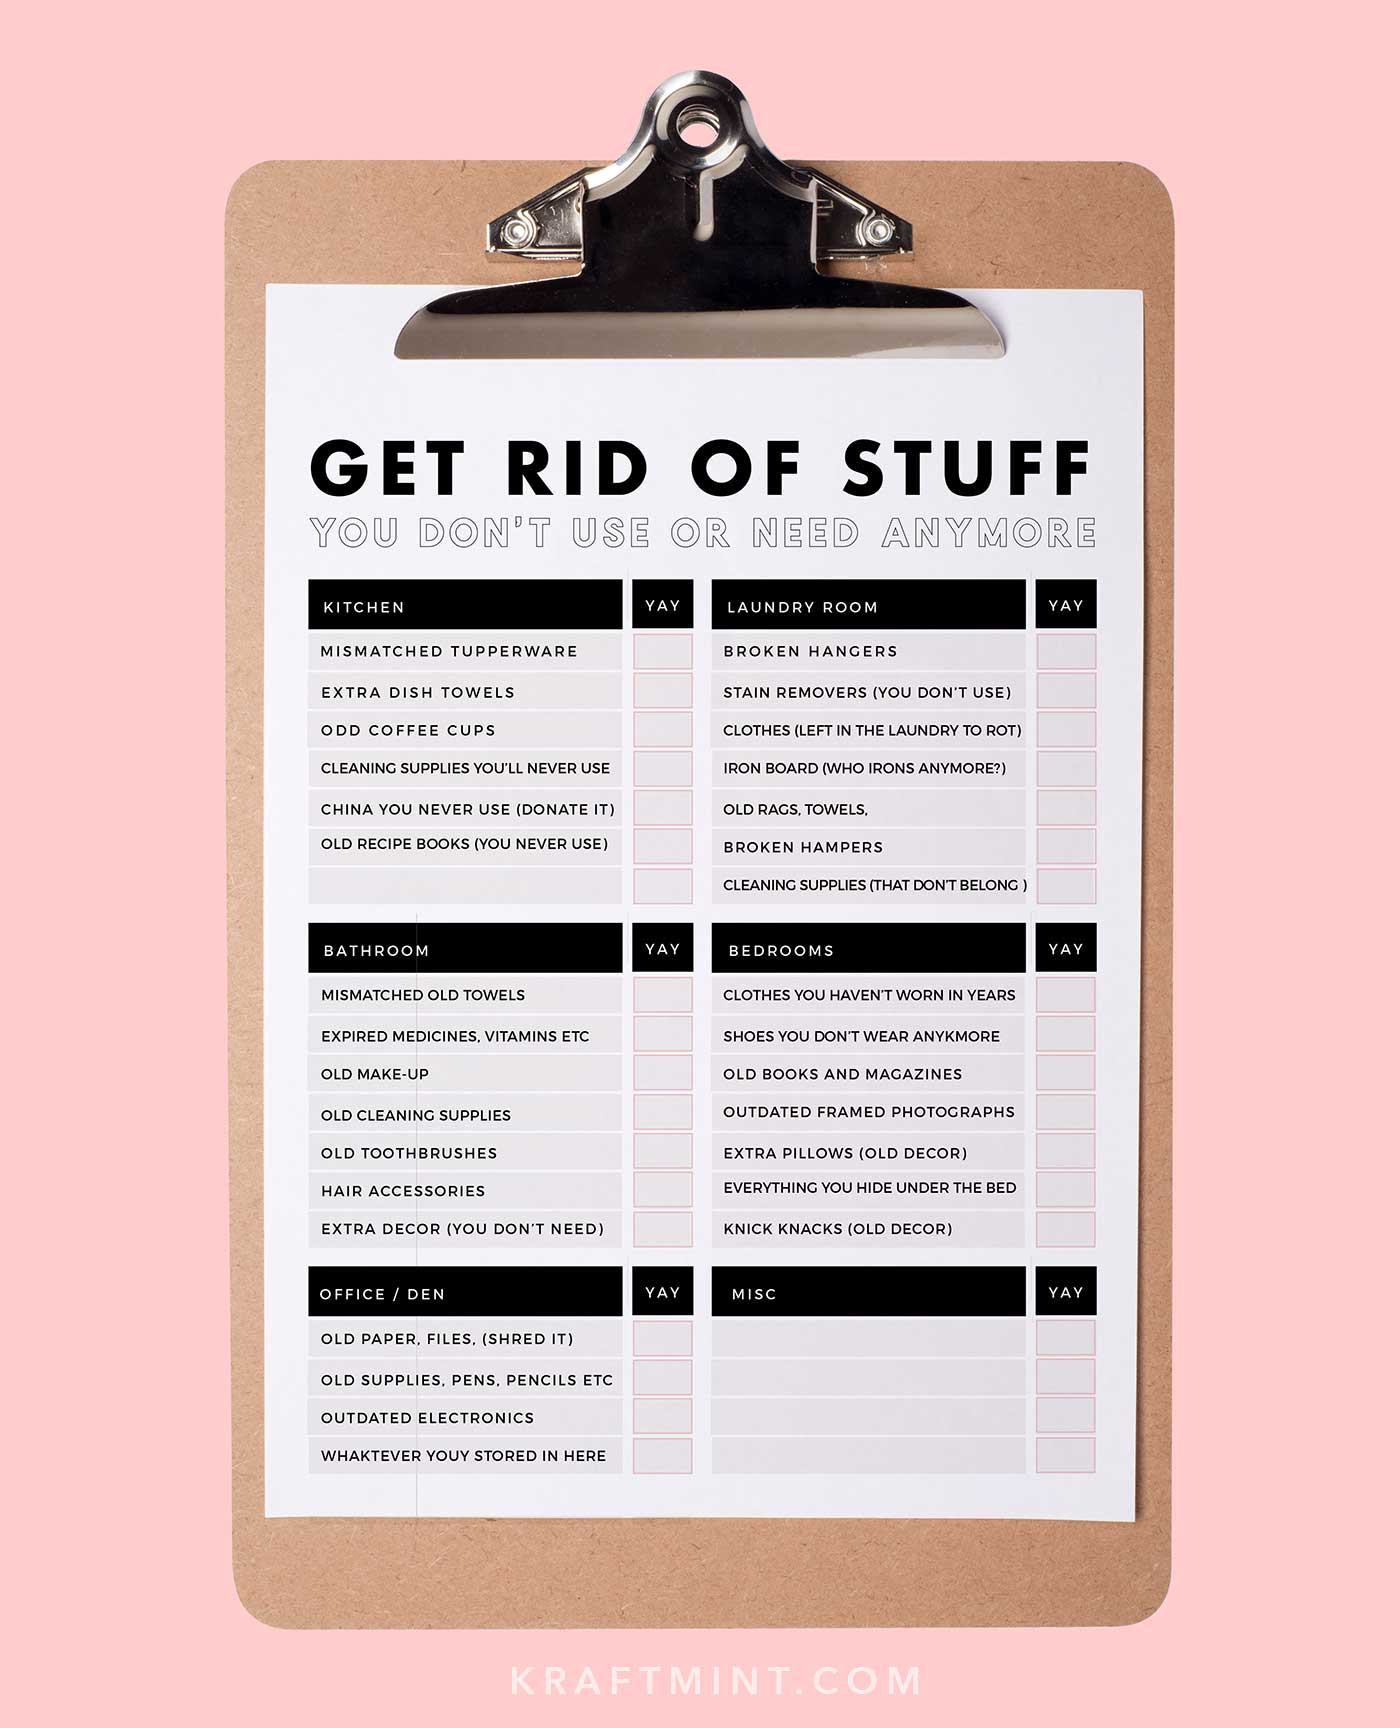 Get rid of stuff you don't need printable